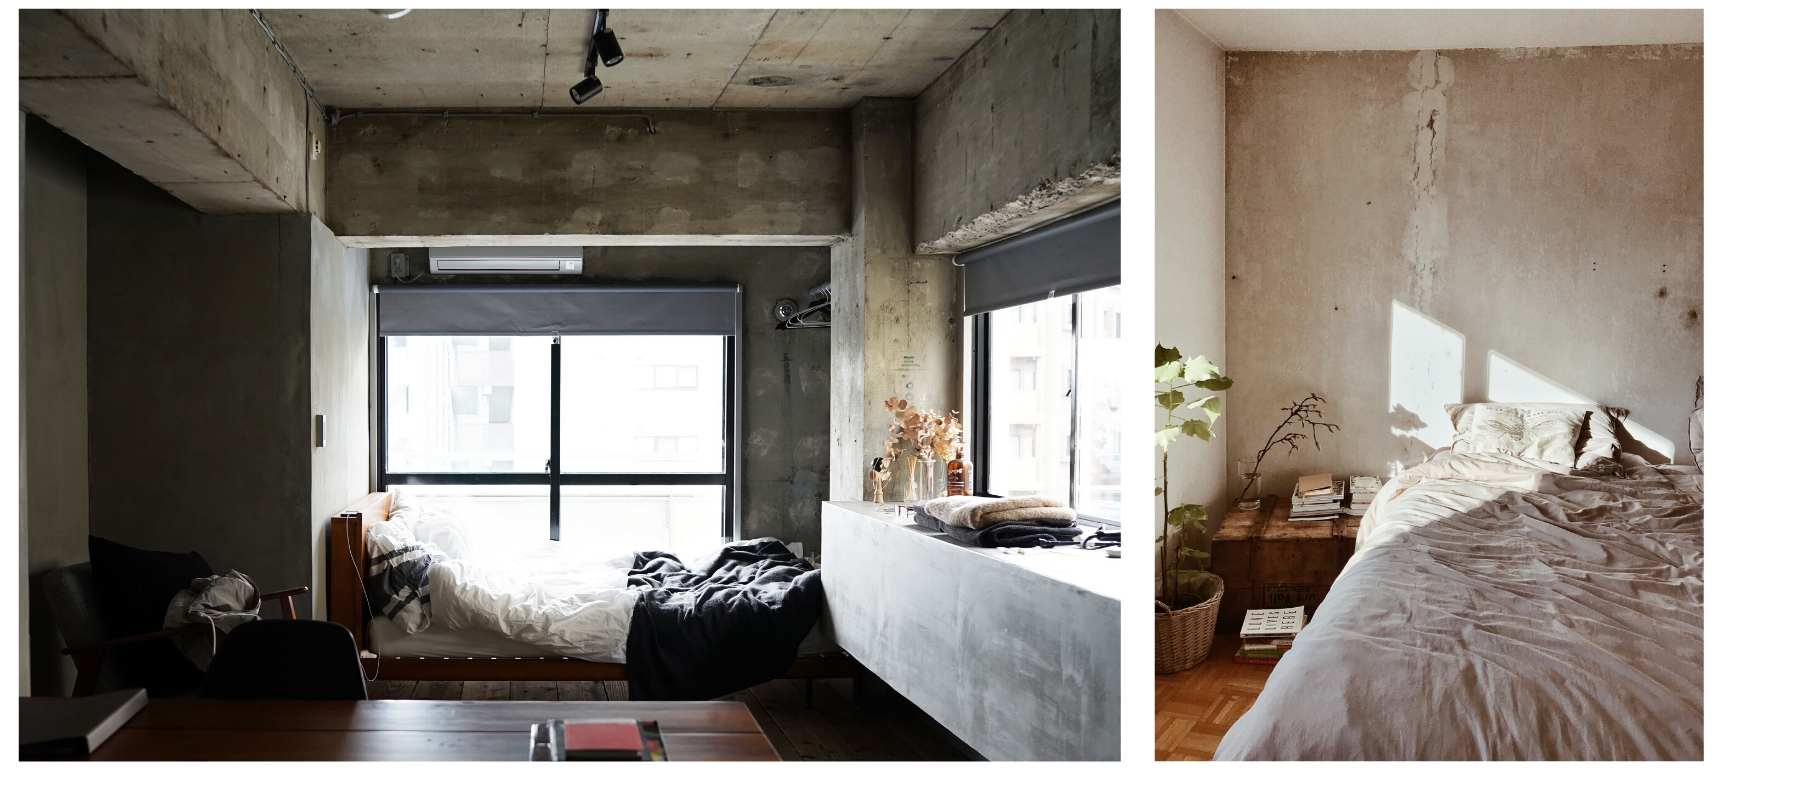 Industrial style bedrooms with raw plastered walls